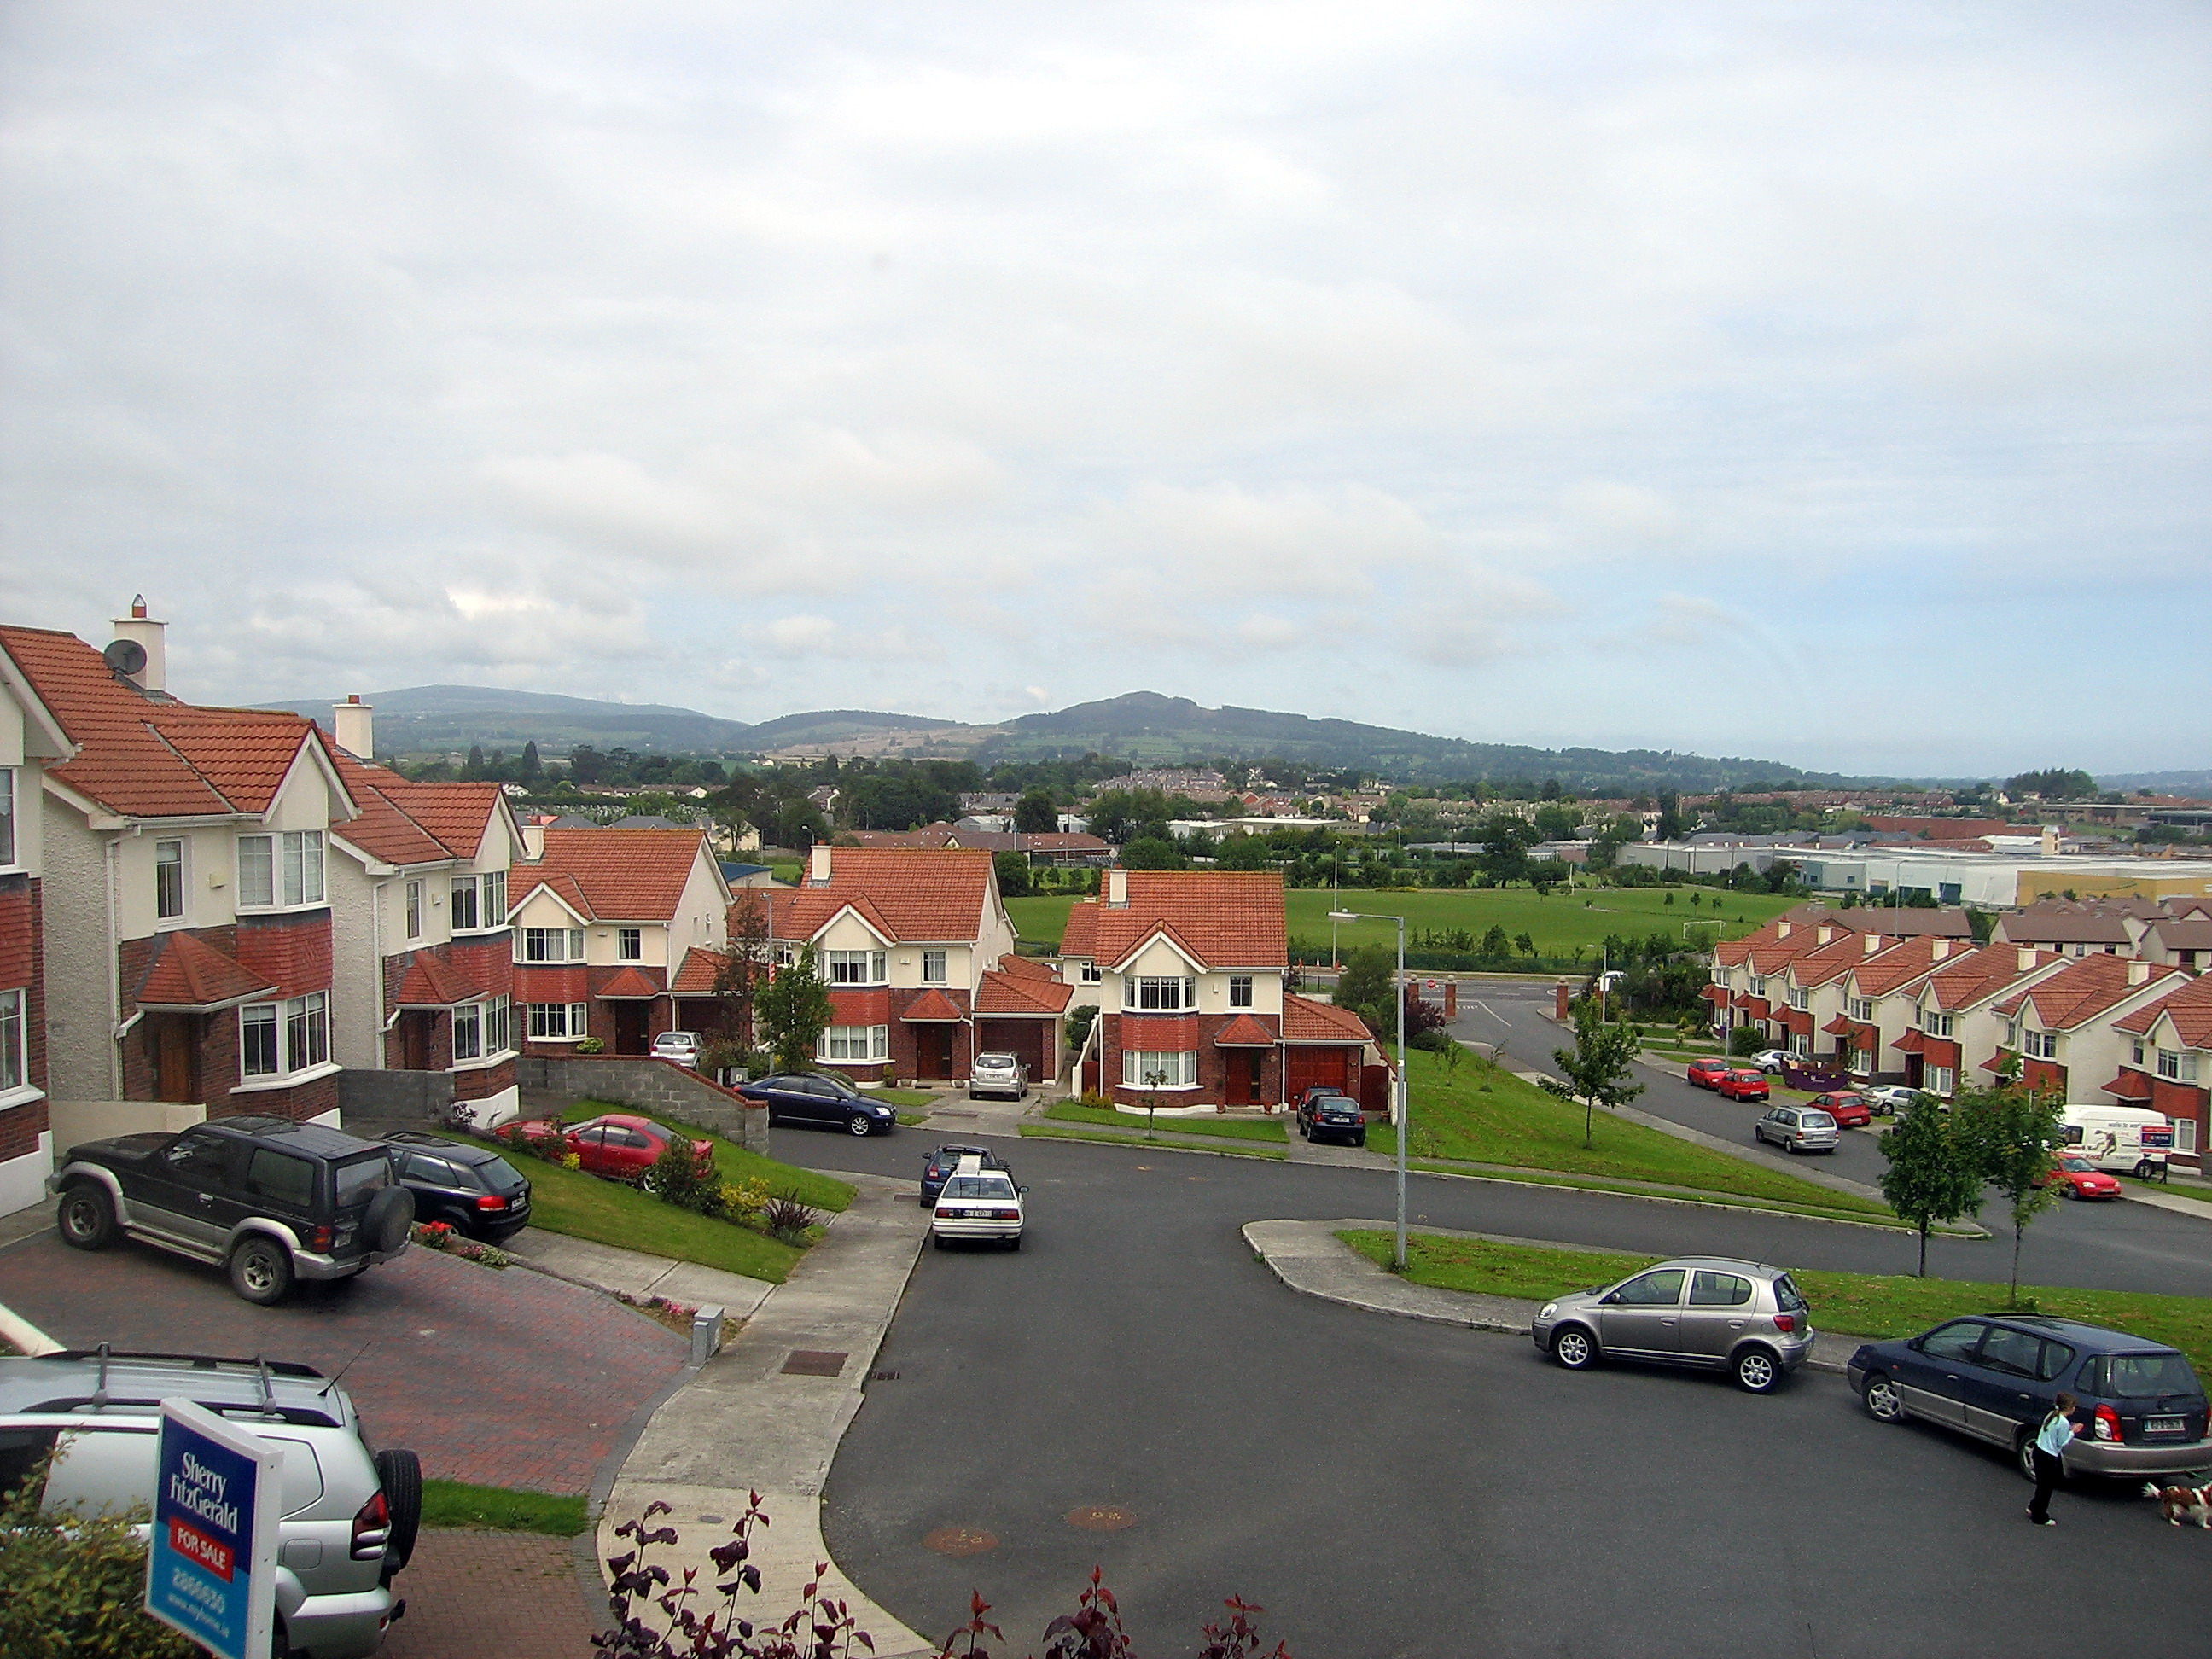 350,000 households already availed of SEAI grants for home energy improvements